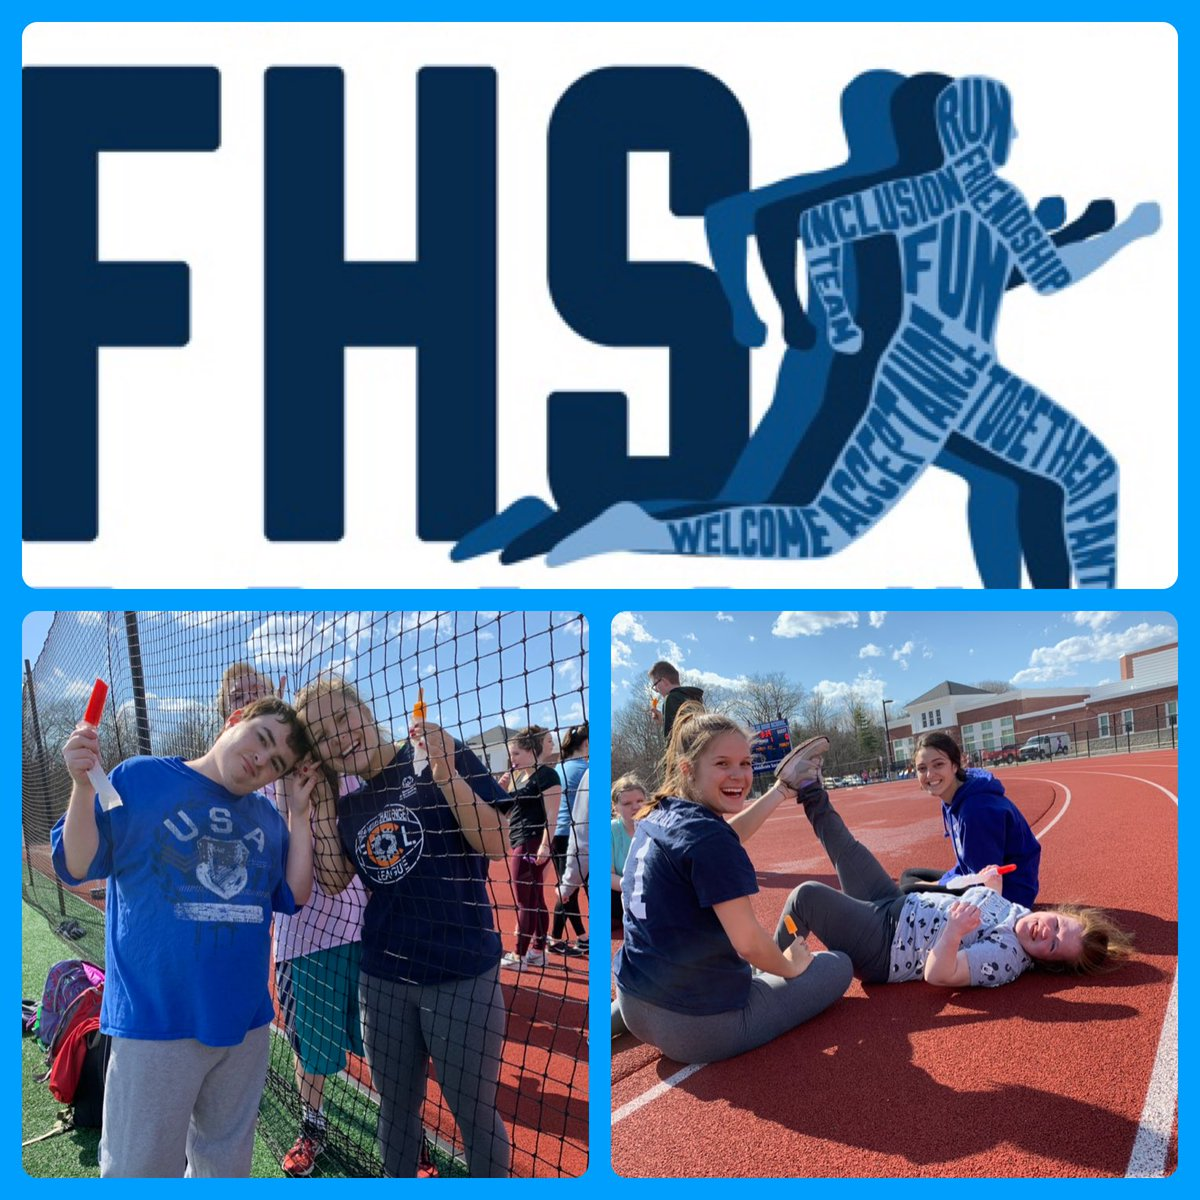 FHS Unified Track meet scheduled for April 25